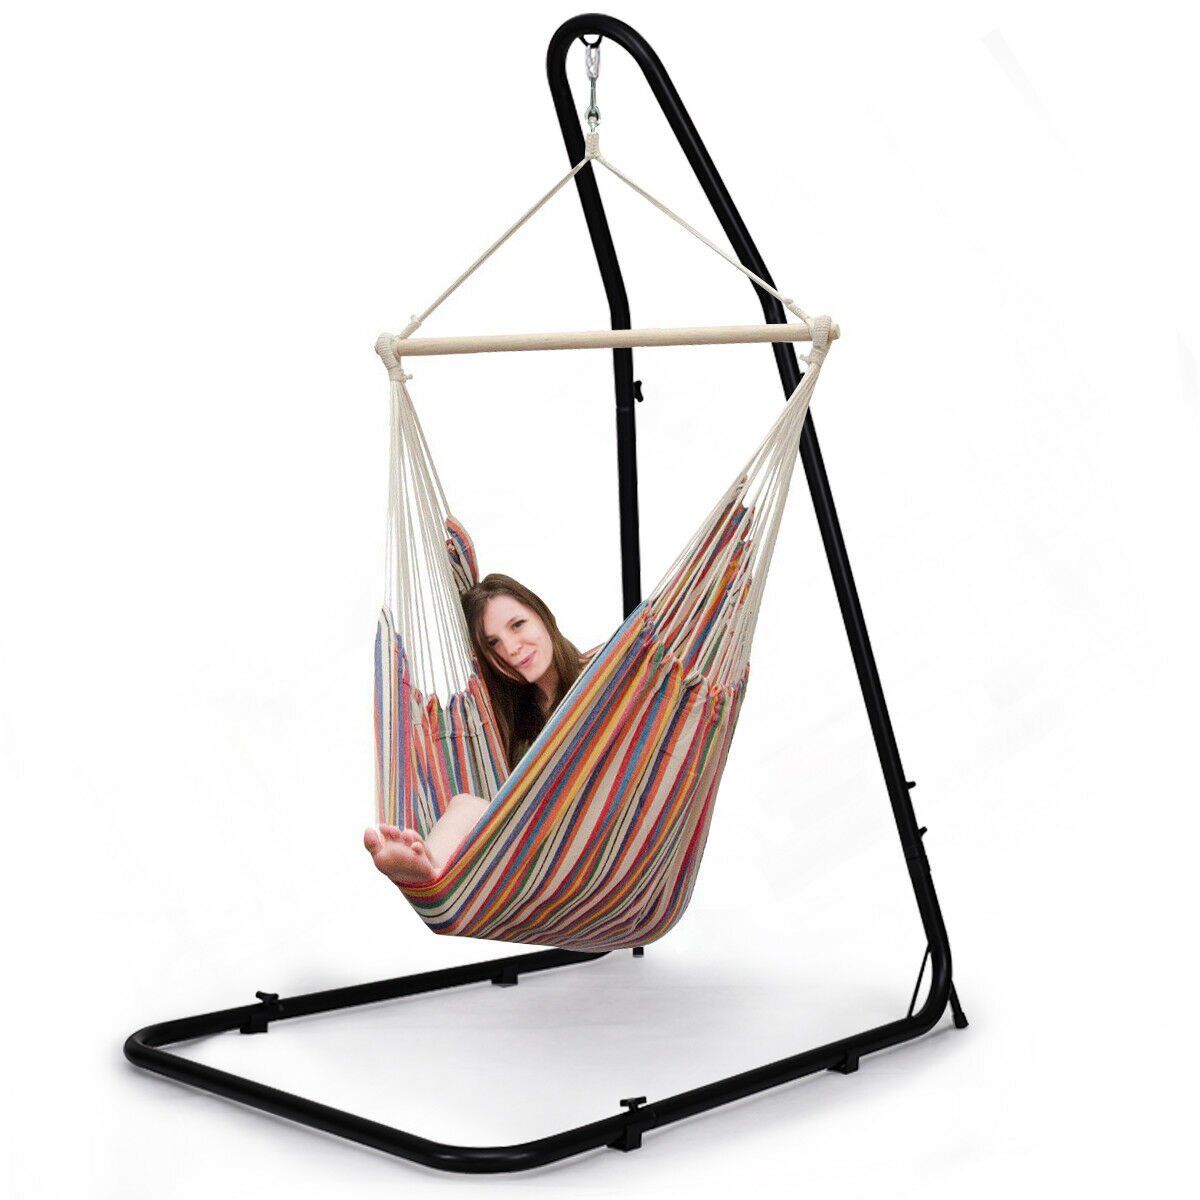 hanging chair stand upholstered kitchen chairs with casters costway adjustable hammock for hammocks swings steel frame 0